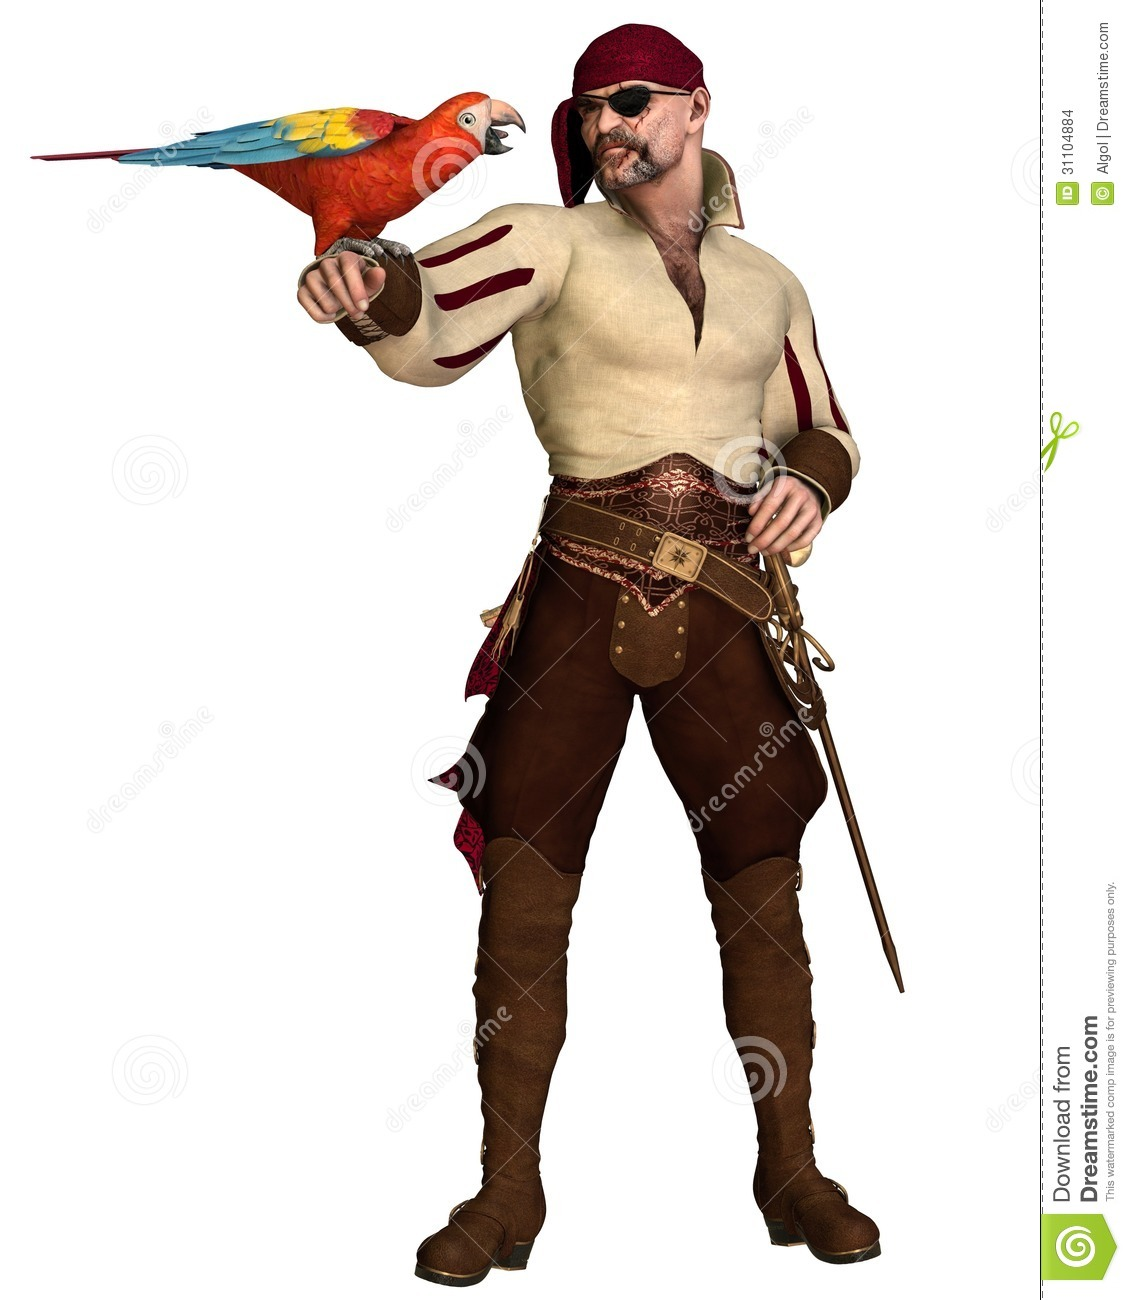 https://thumbs.dreamstime.com/z/old-pirate-parrot-eye-patch-bandana-holding-scarlet-macaw-d-digitally-rendered-illustration-31104884.jpg